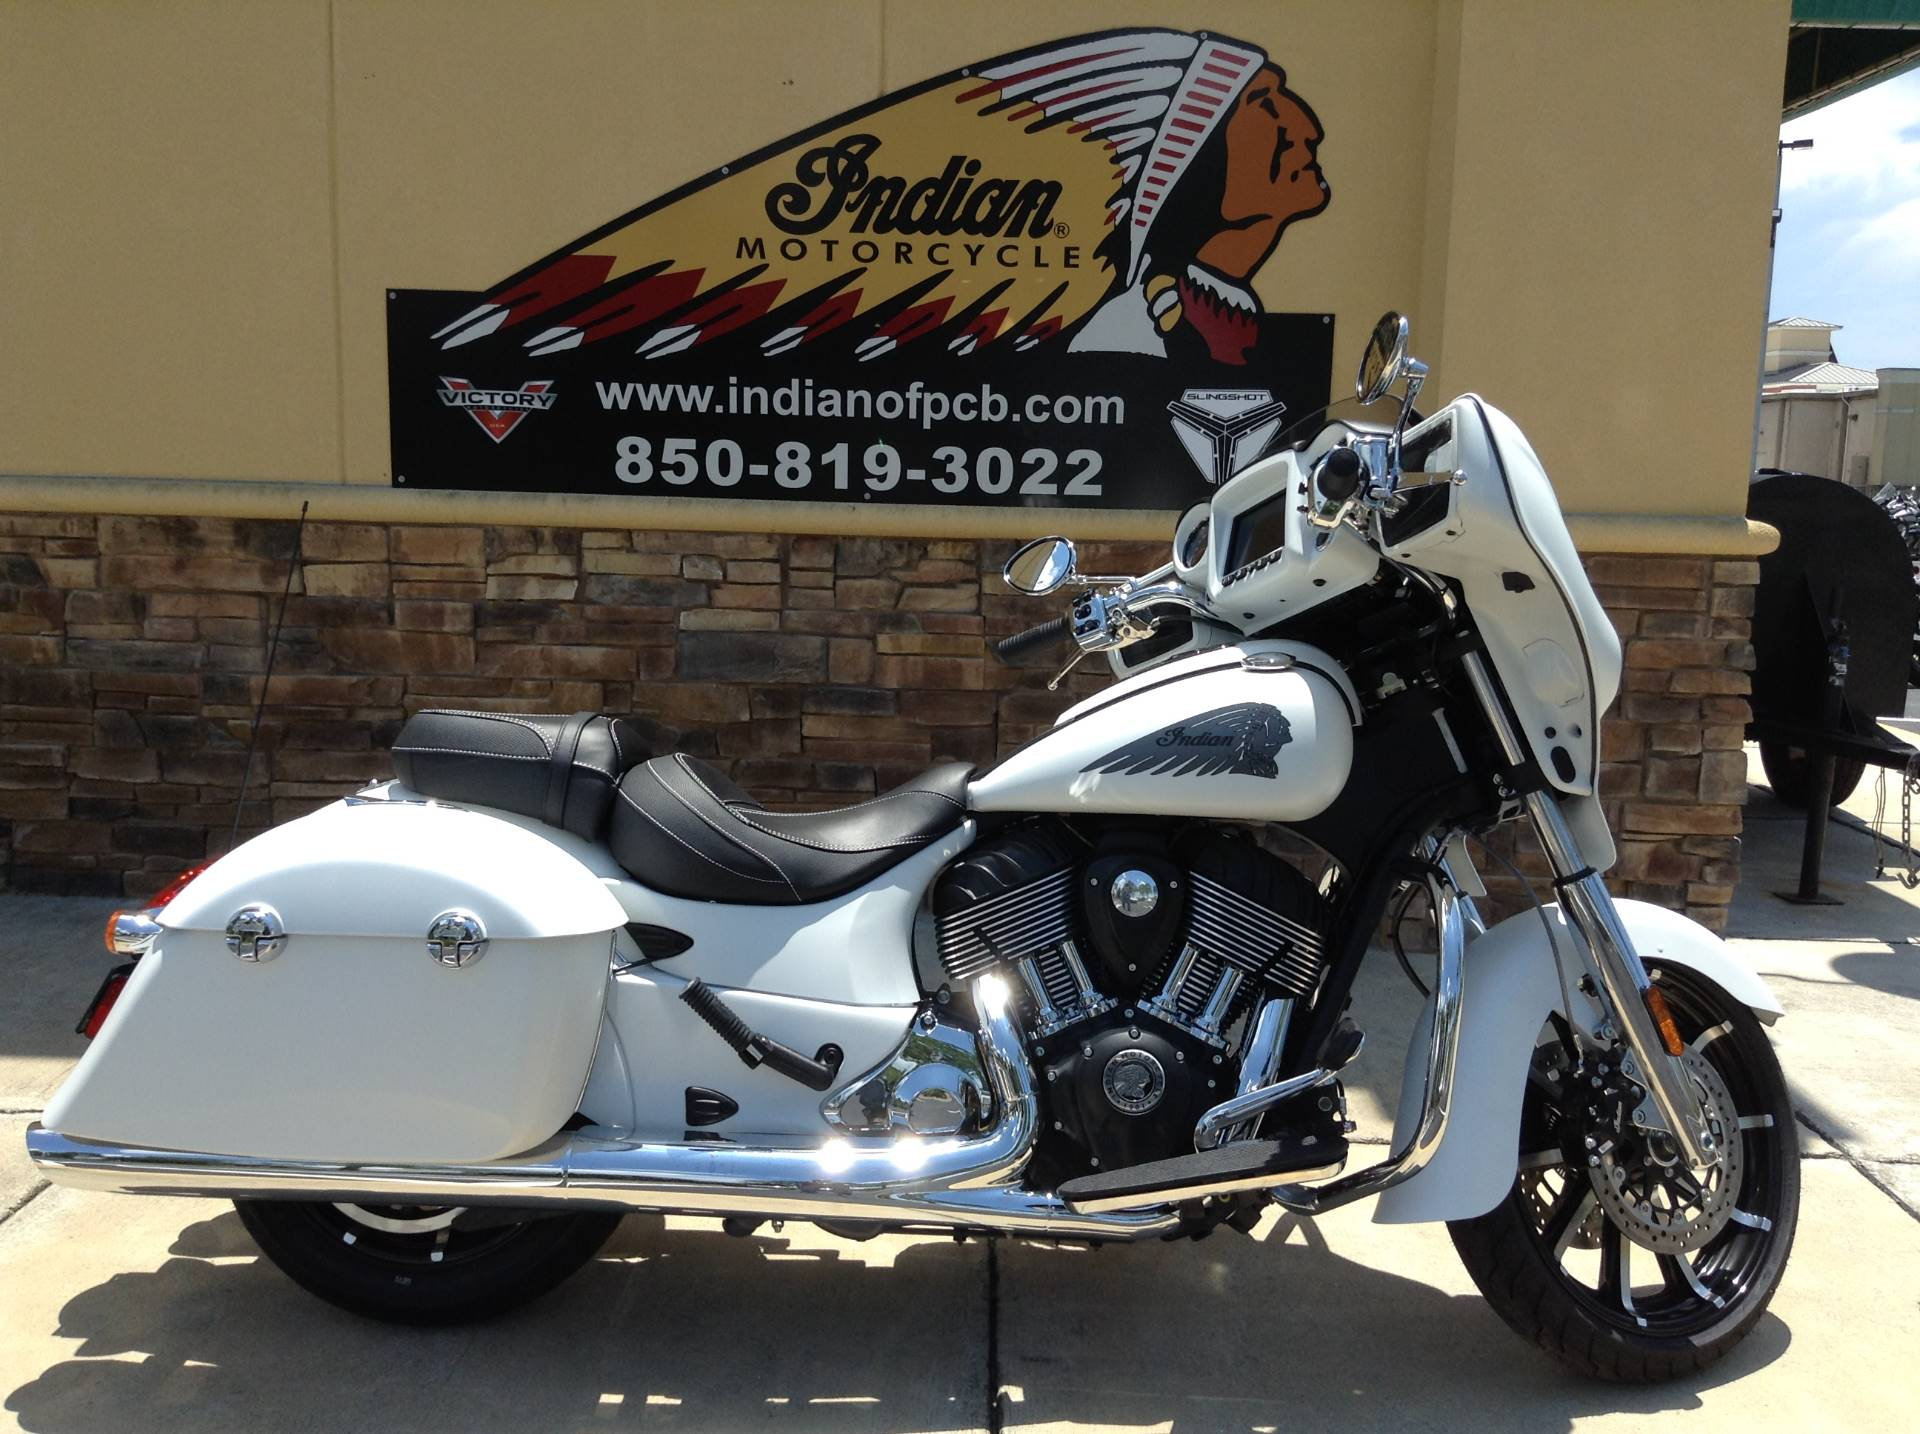 2018 Indian Chieftain Limited in Panama City Beach, Florida